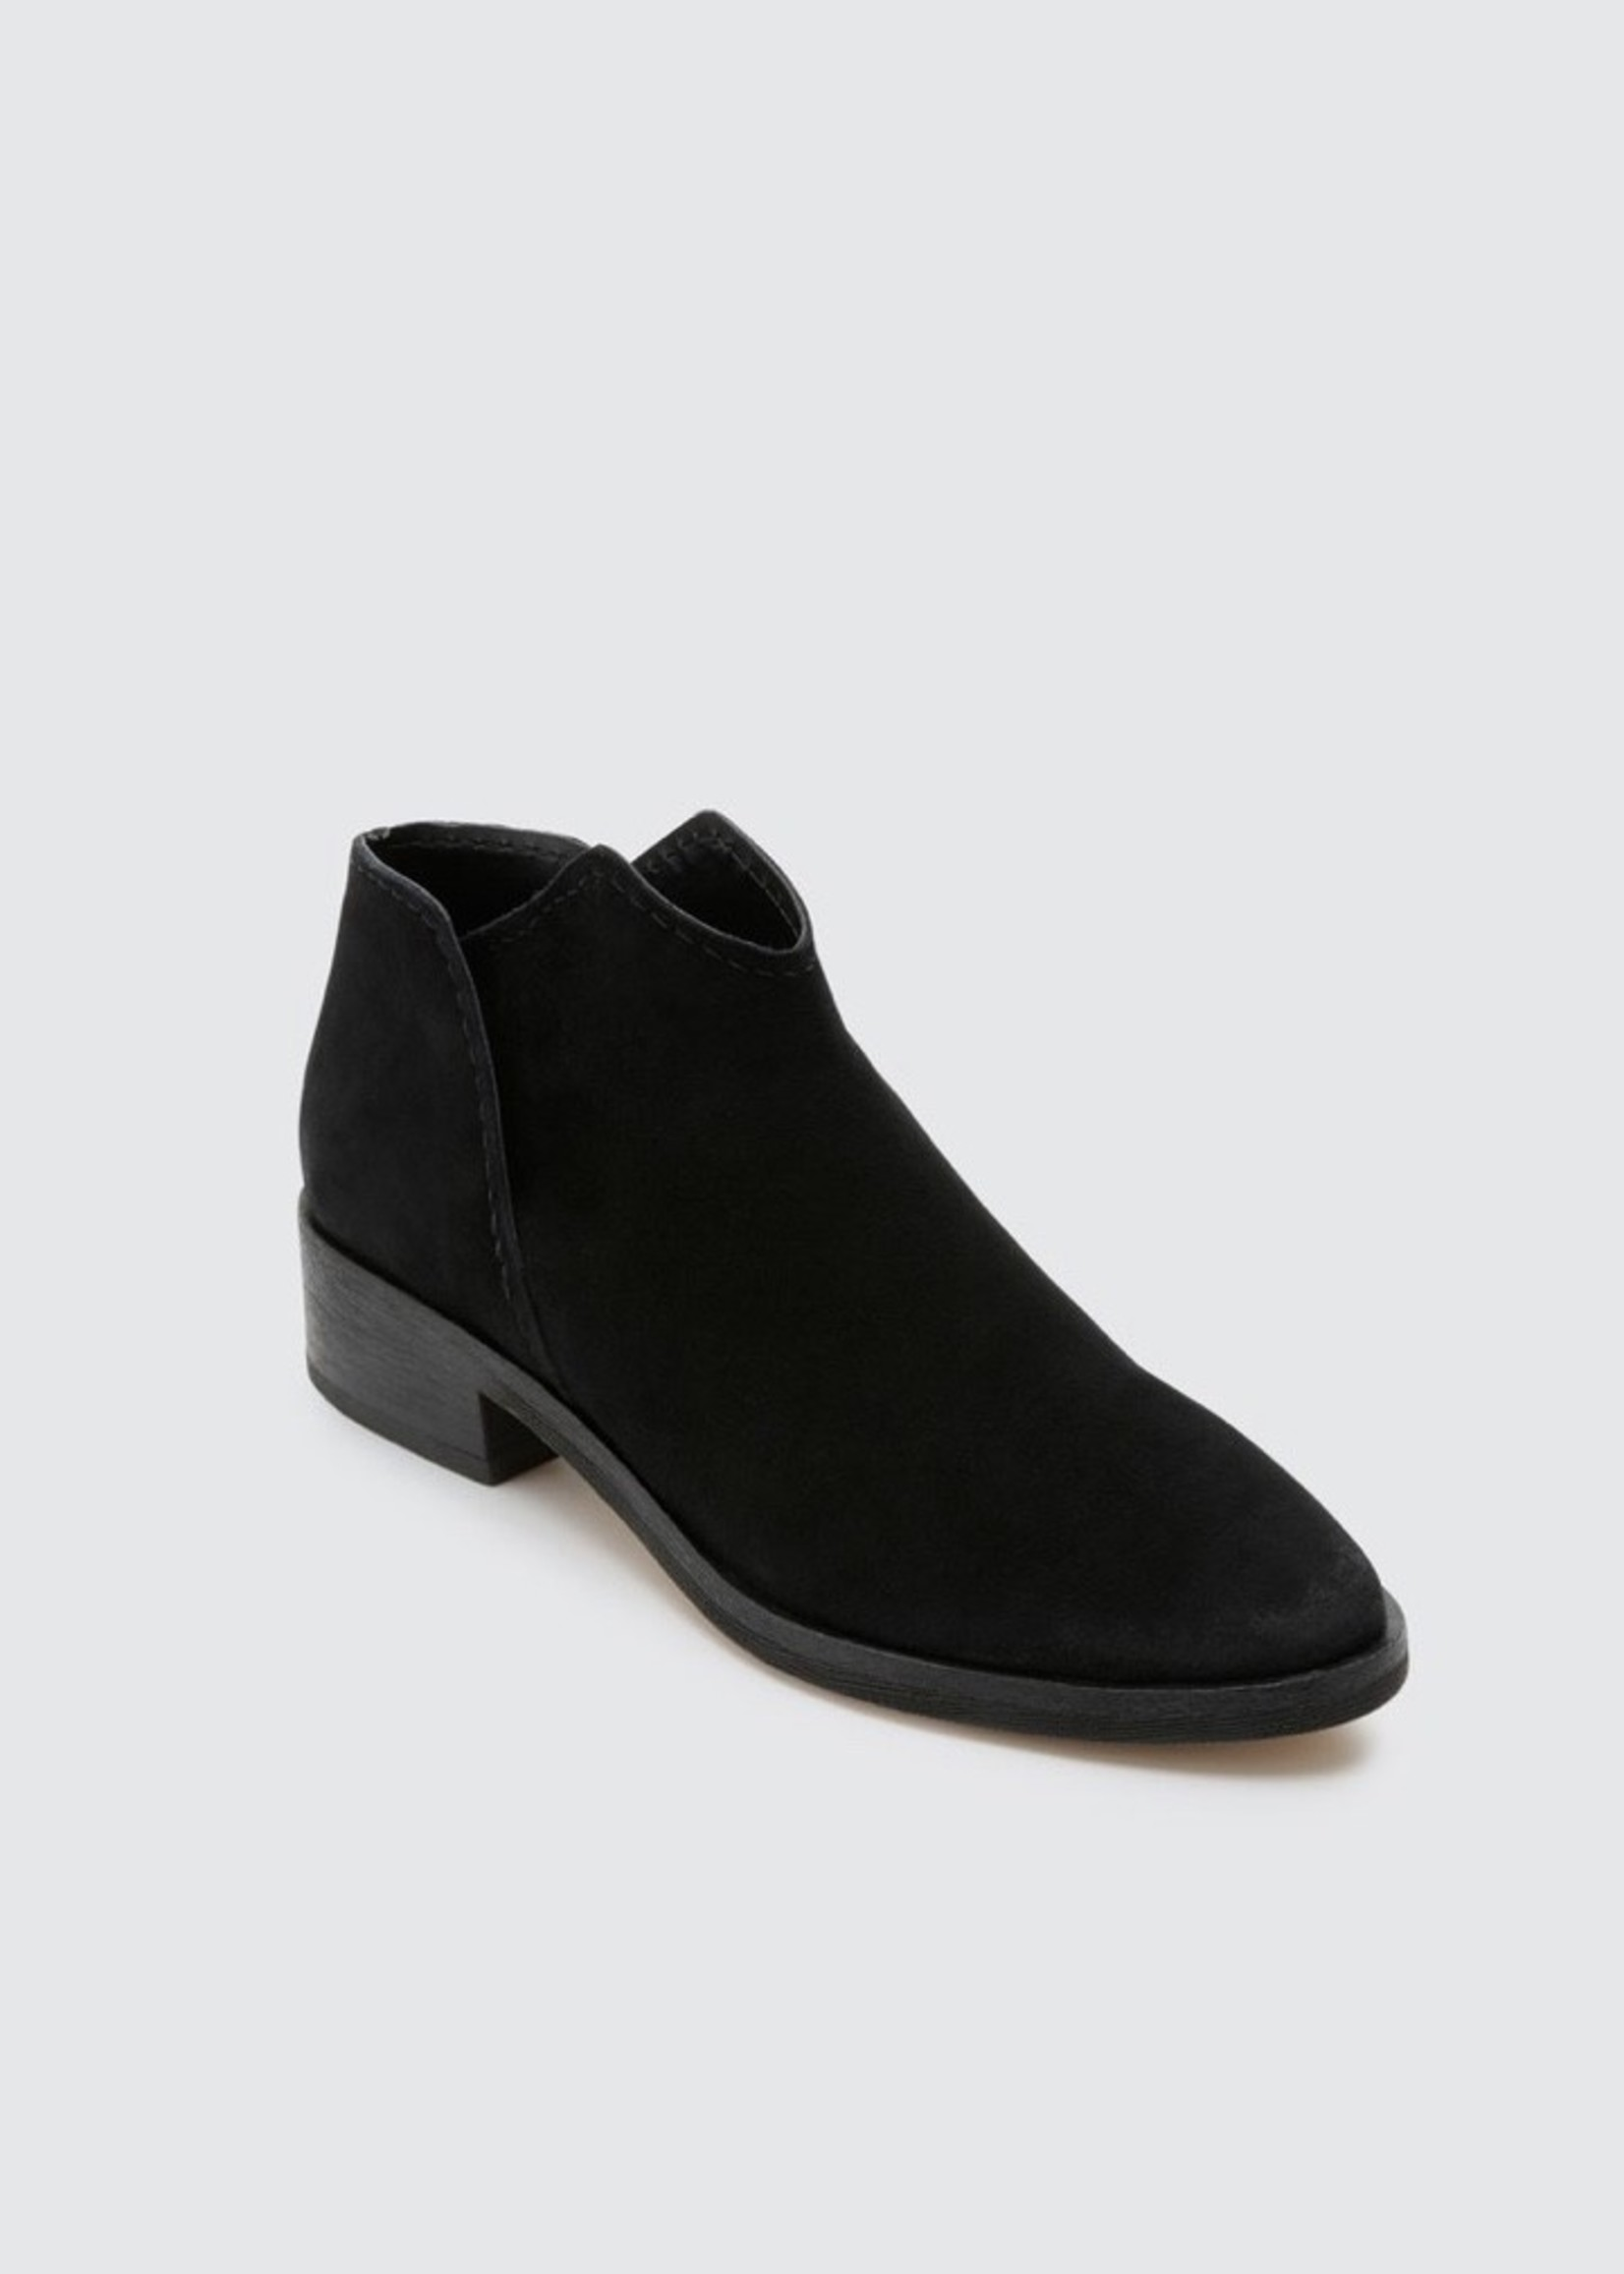 DOLCE VITA Trist  Ankle Bootie